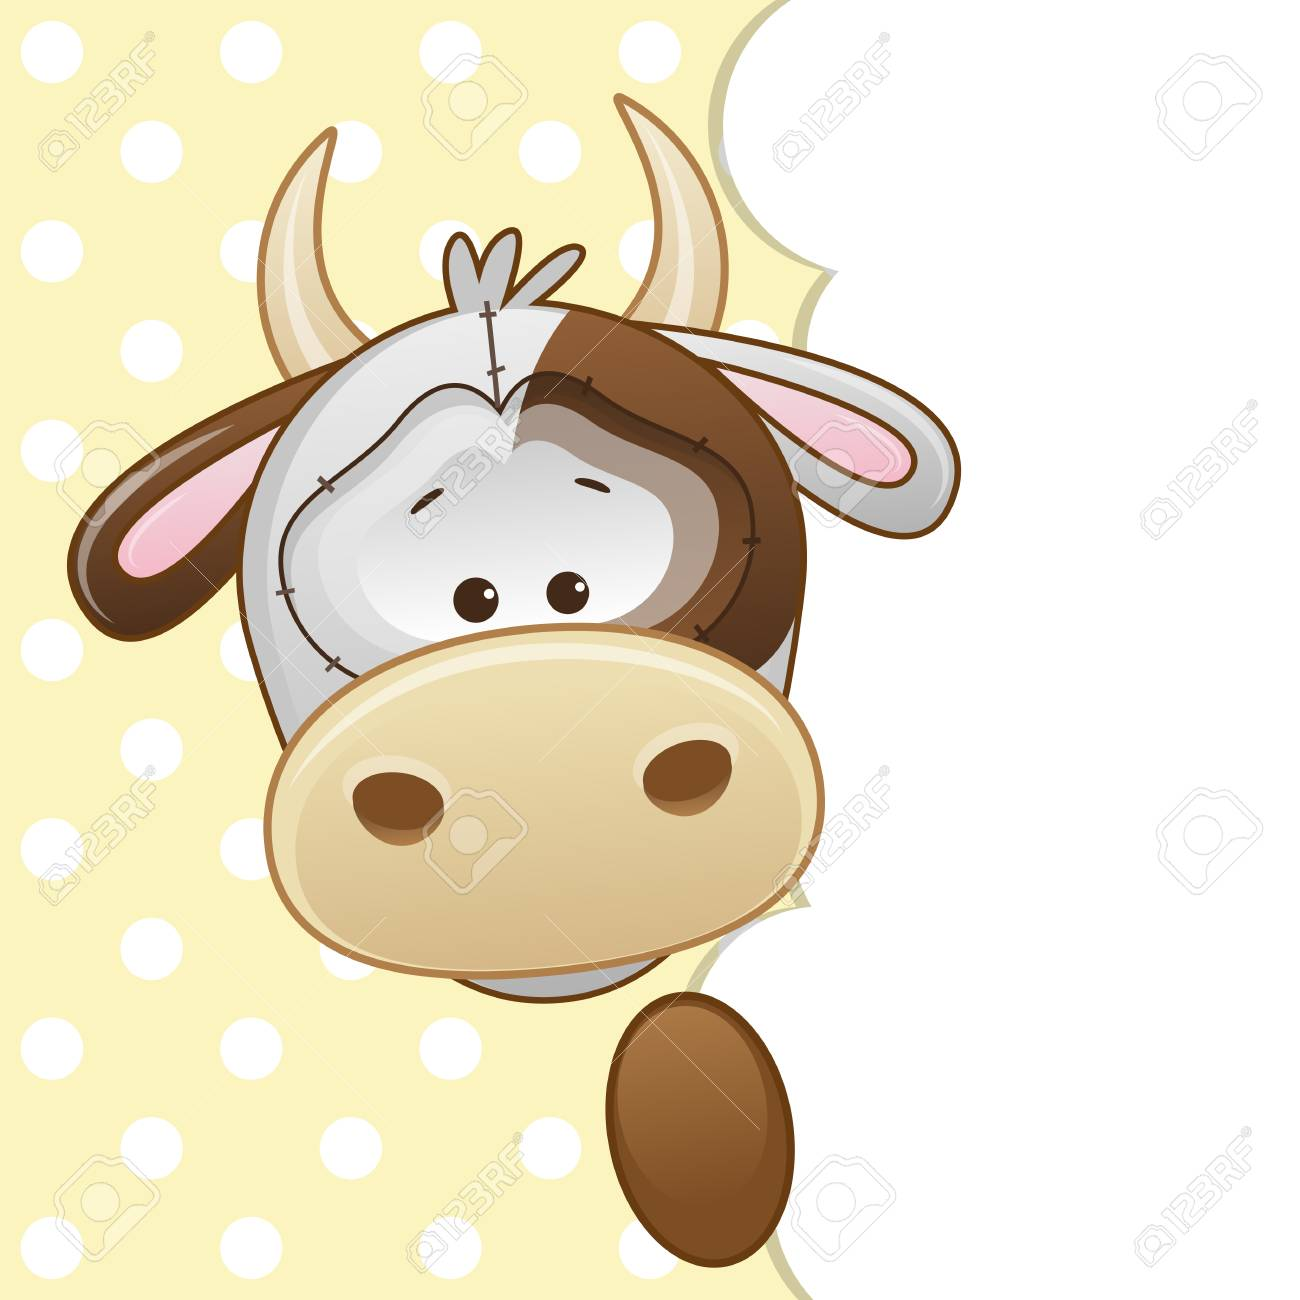 cow cartoons stock photos royalty free cow cartoons images and